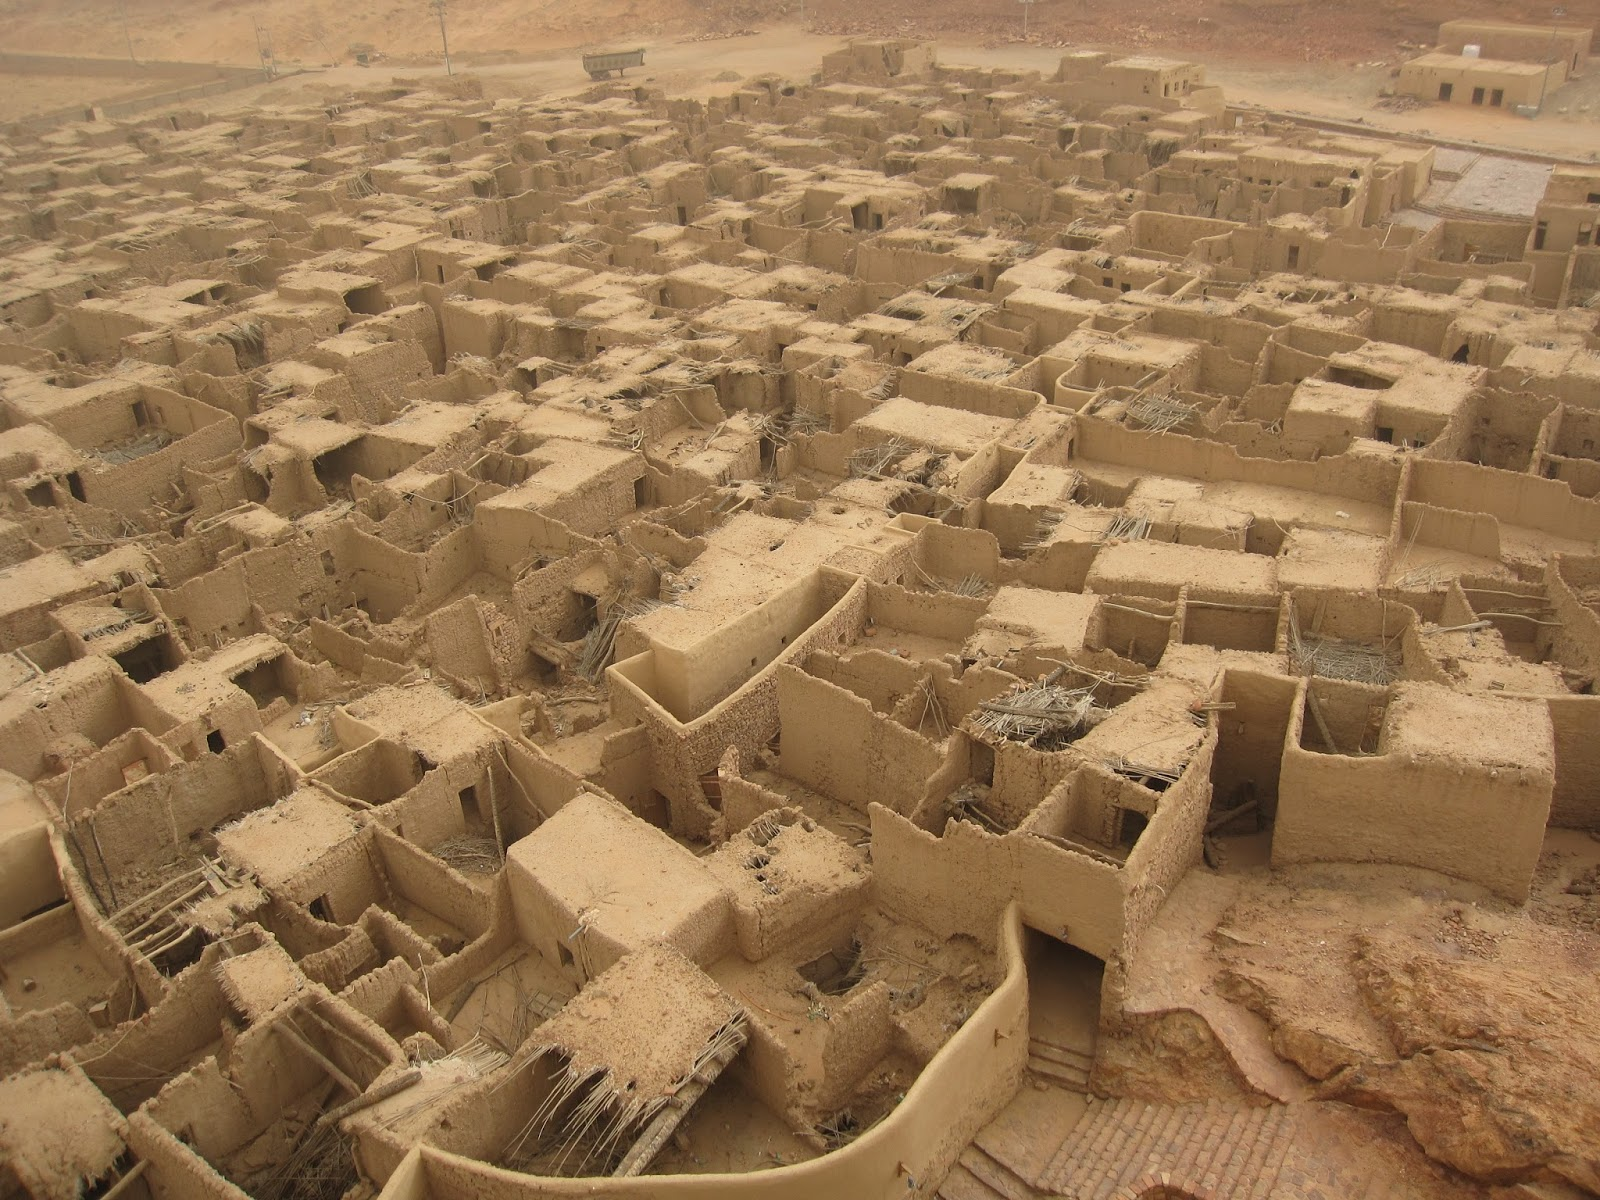 2000 Years Old Al Mabiyat Village In Al Ula Saudi Arabia Life